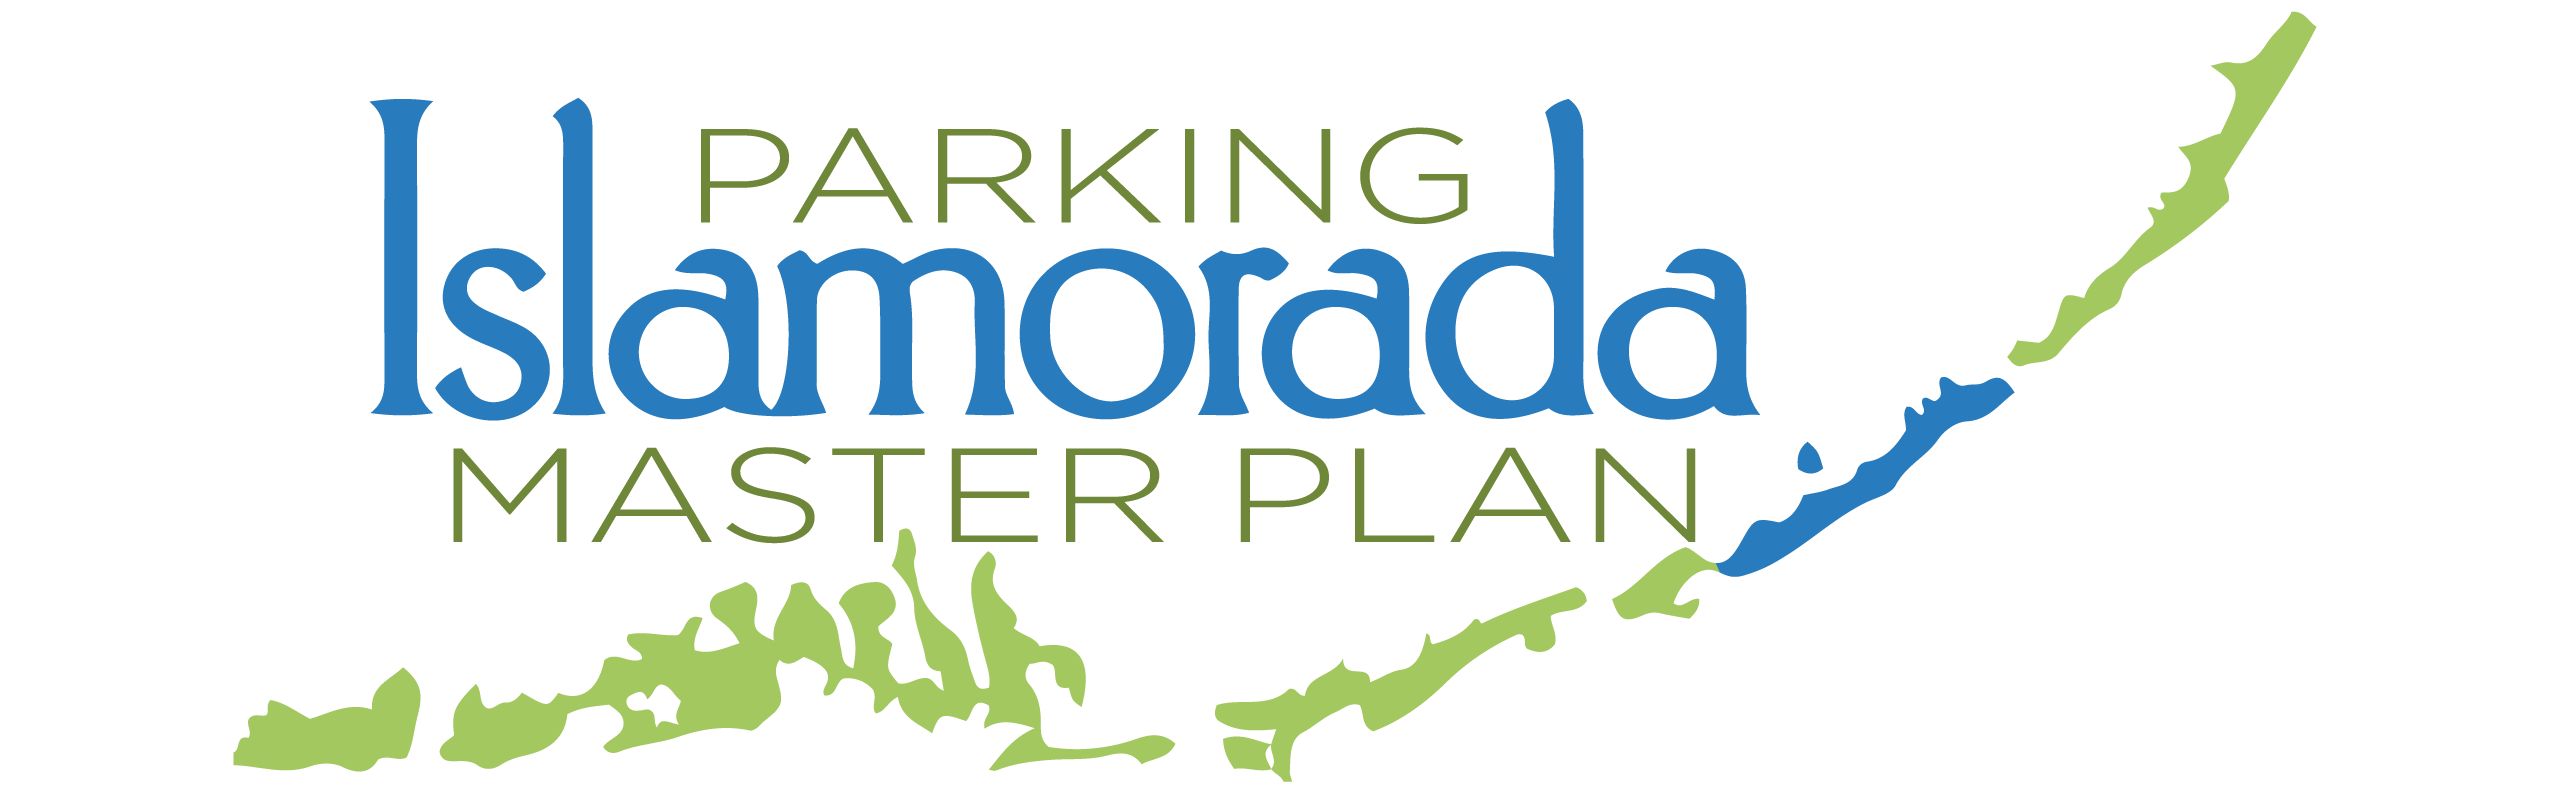 Islamorada Parking Master Plan